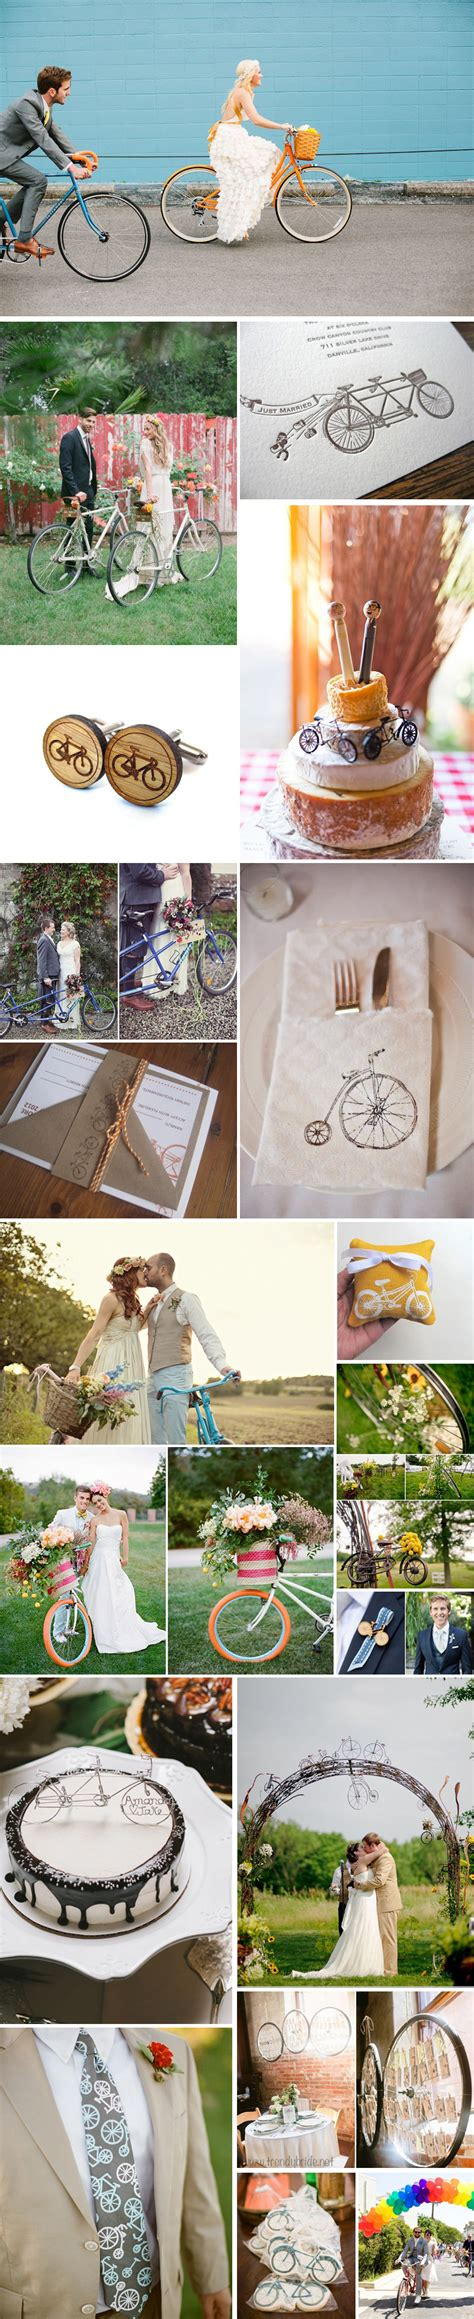 A Bicycle Themed Inspiration Board Bespokebride